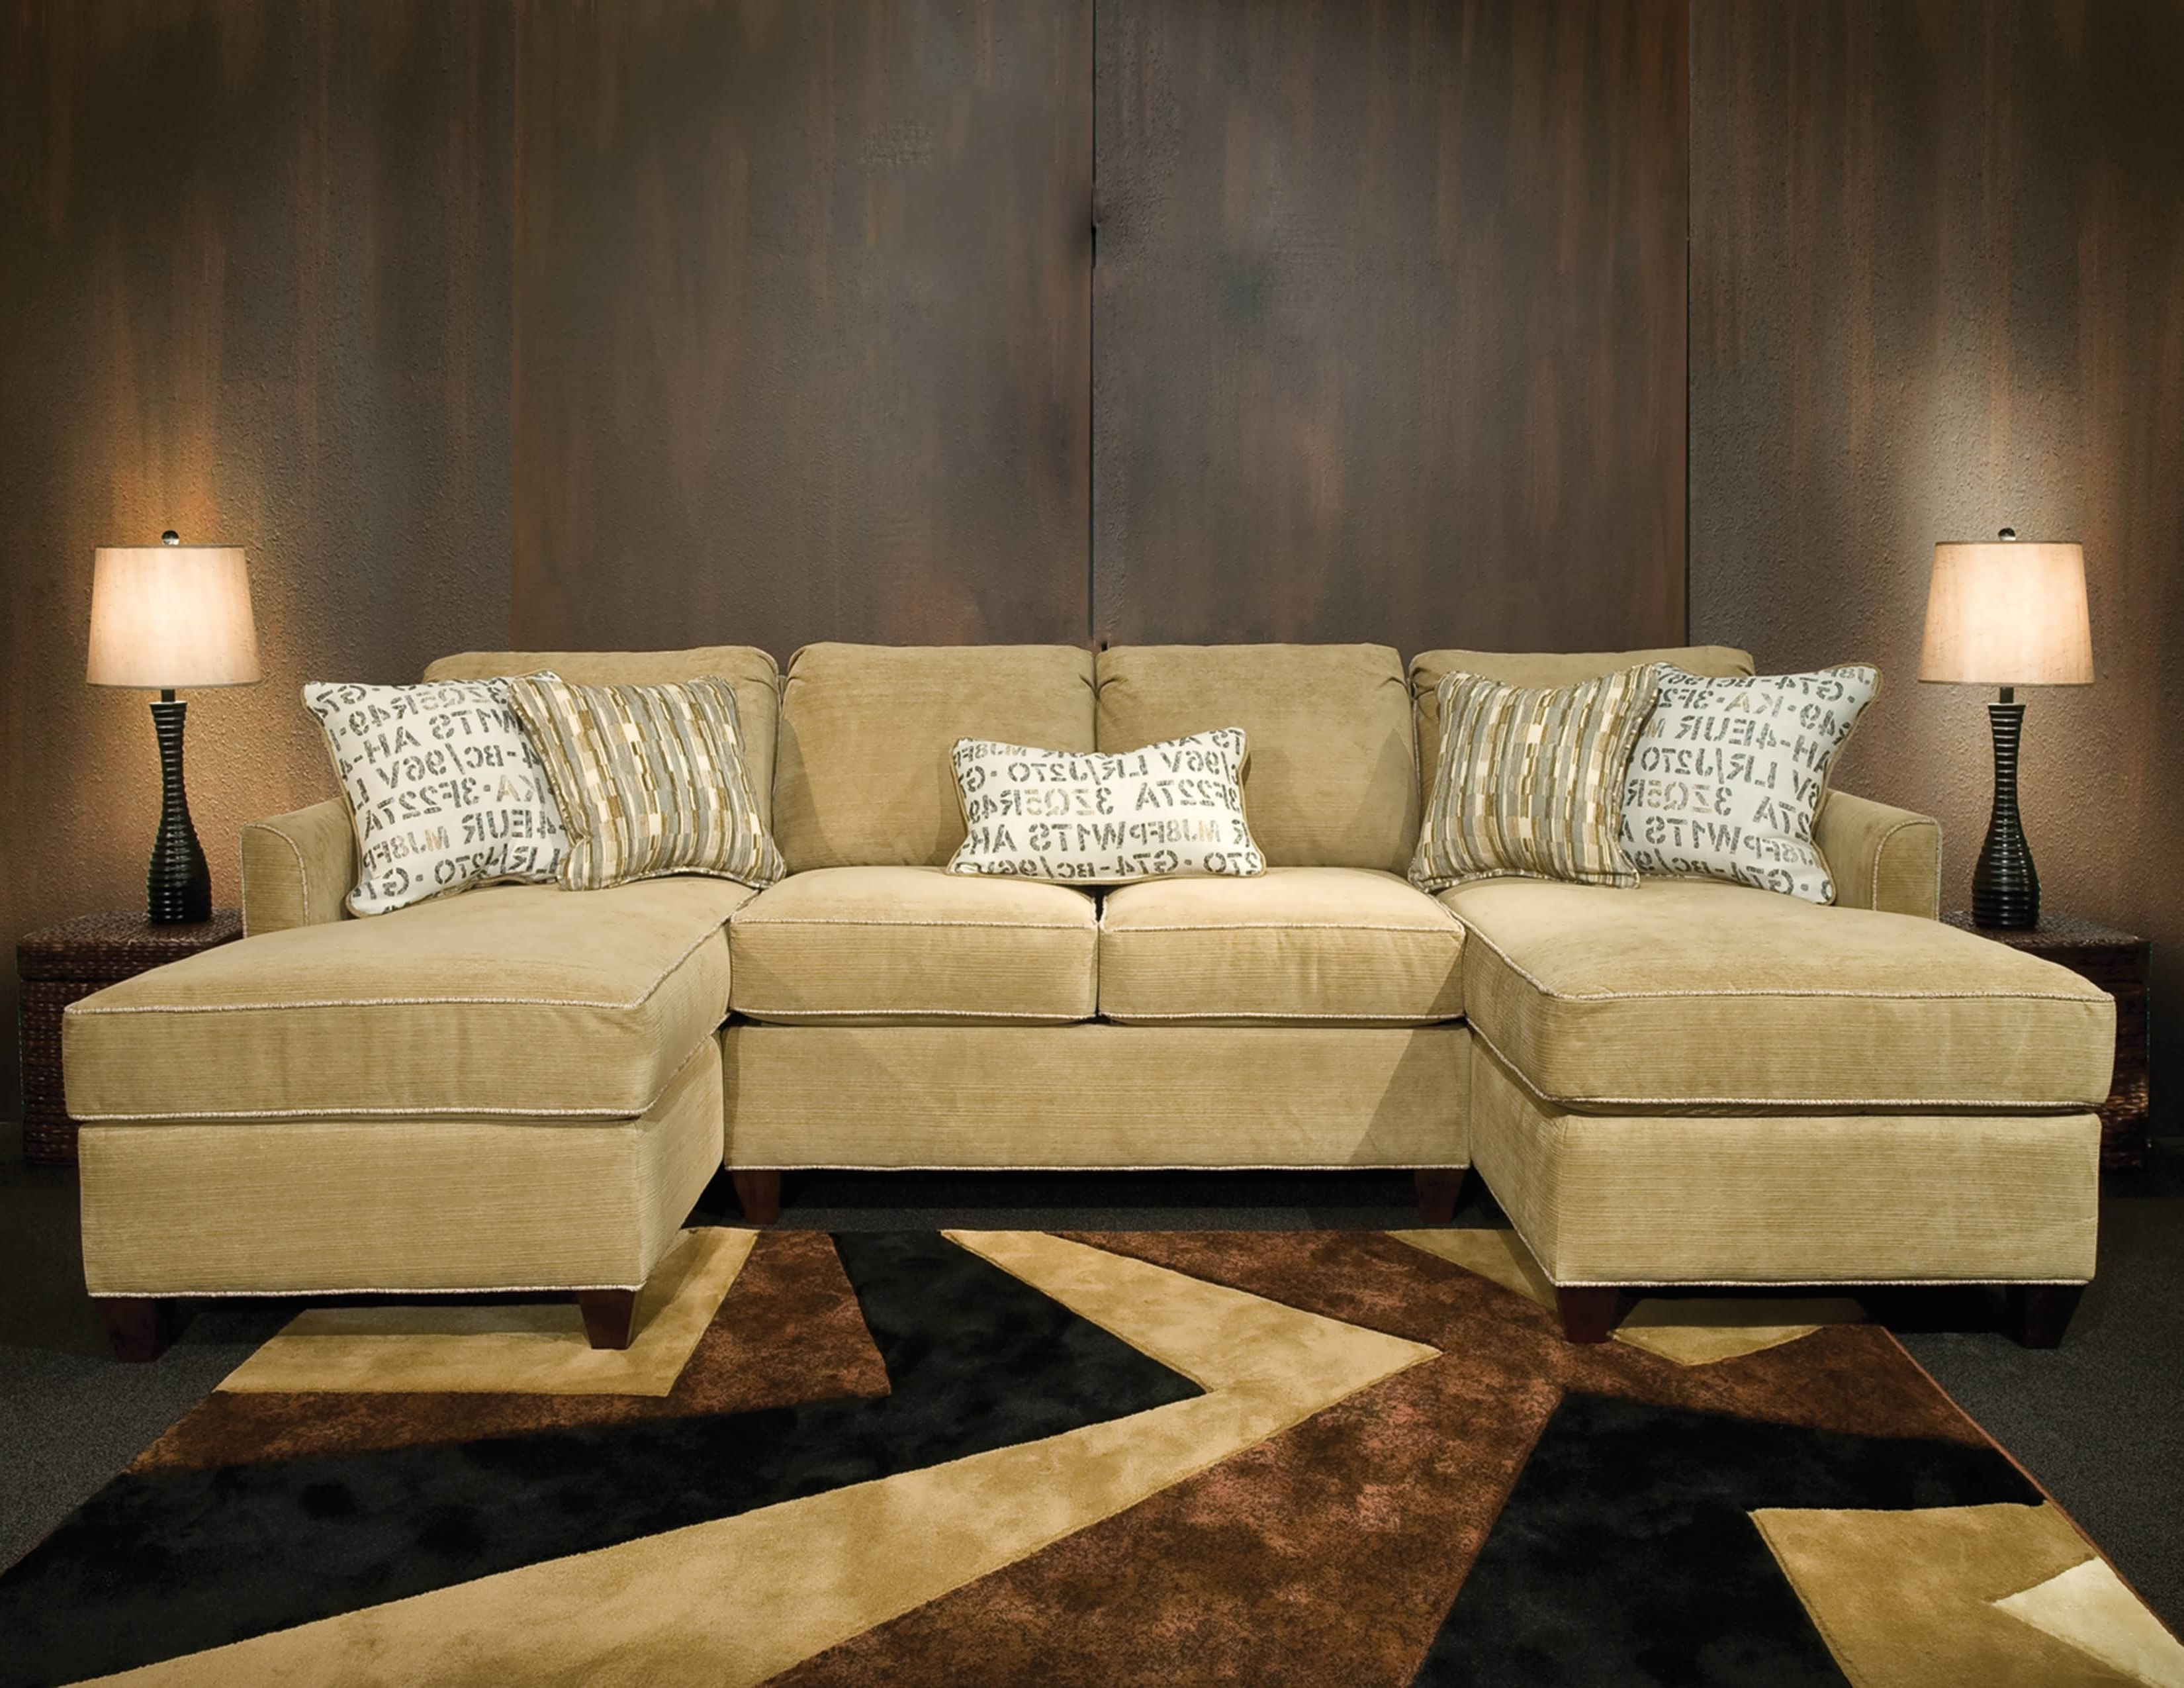 Well Known Sofa : Extra Large Sectional Sofas With Chaise Small Sectional With Small Sectional Sofas With Chaise Lounge (View 13 of 15)